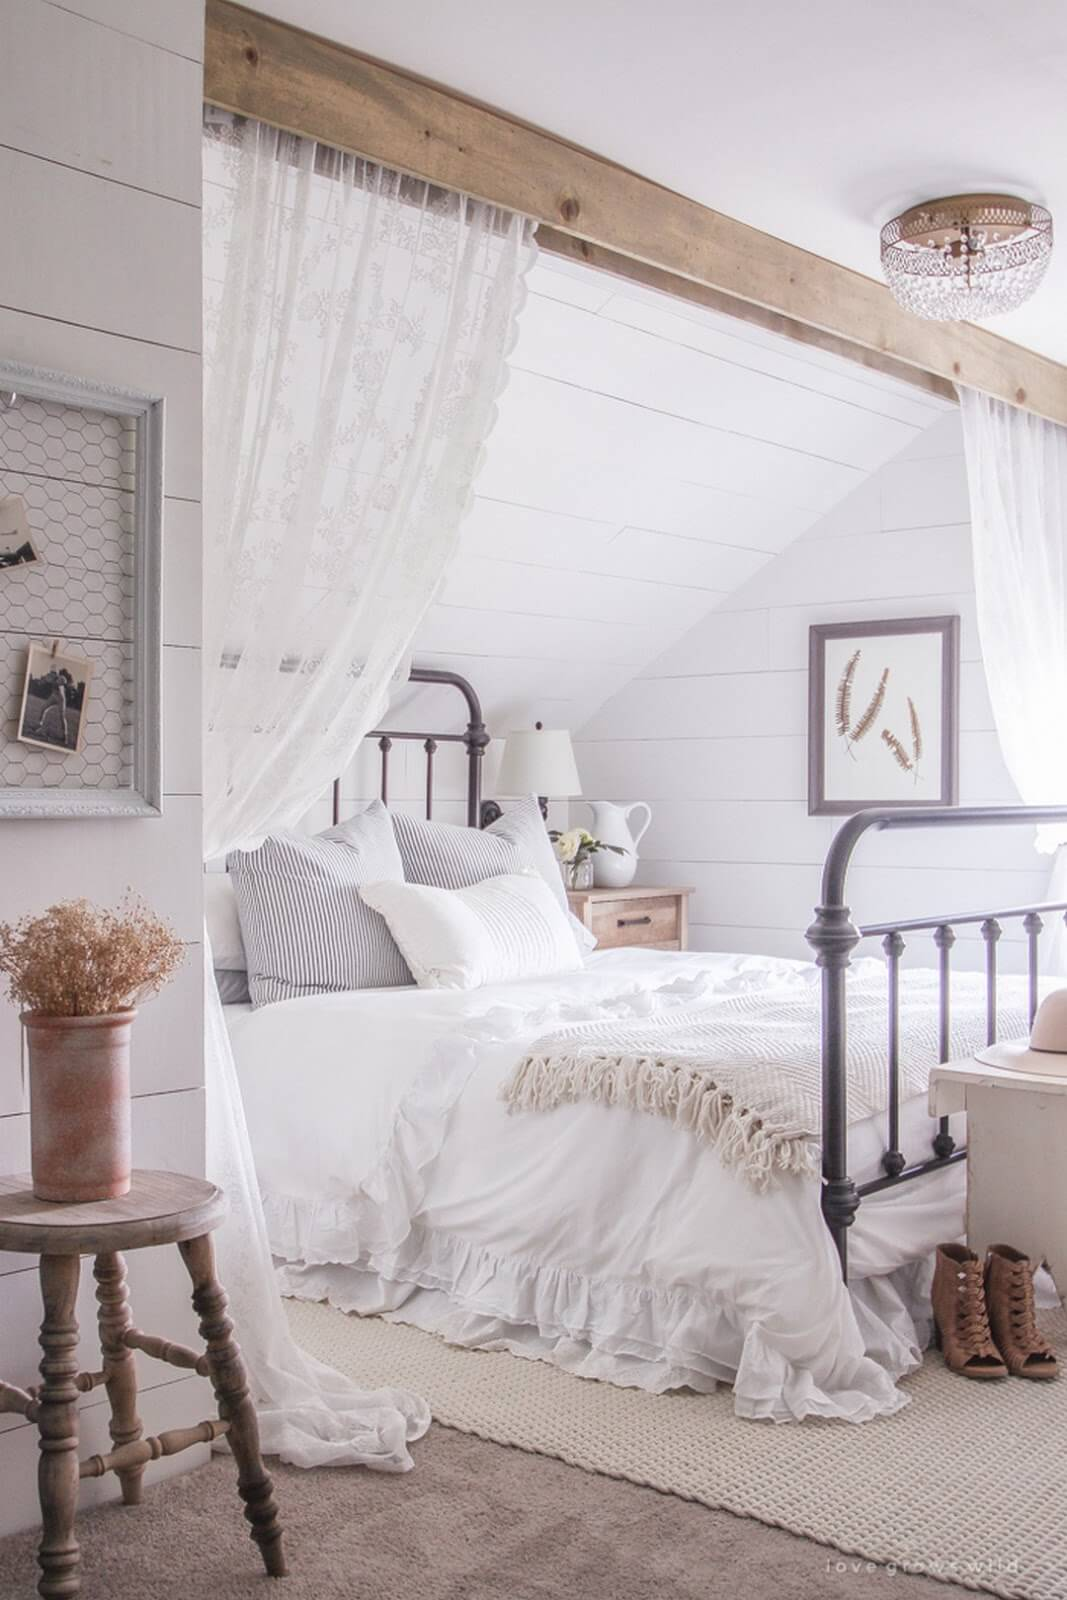 title | Rustic Chic Bedroom Ideas